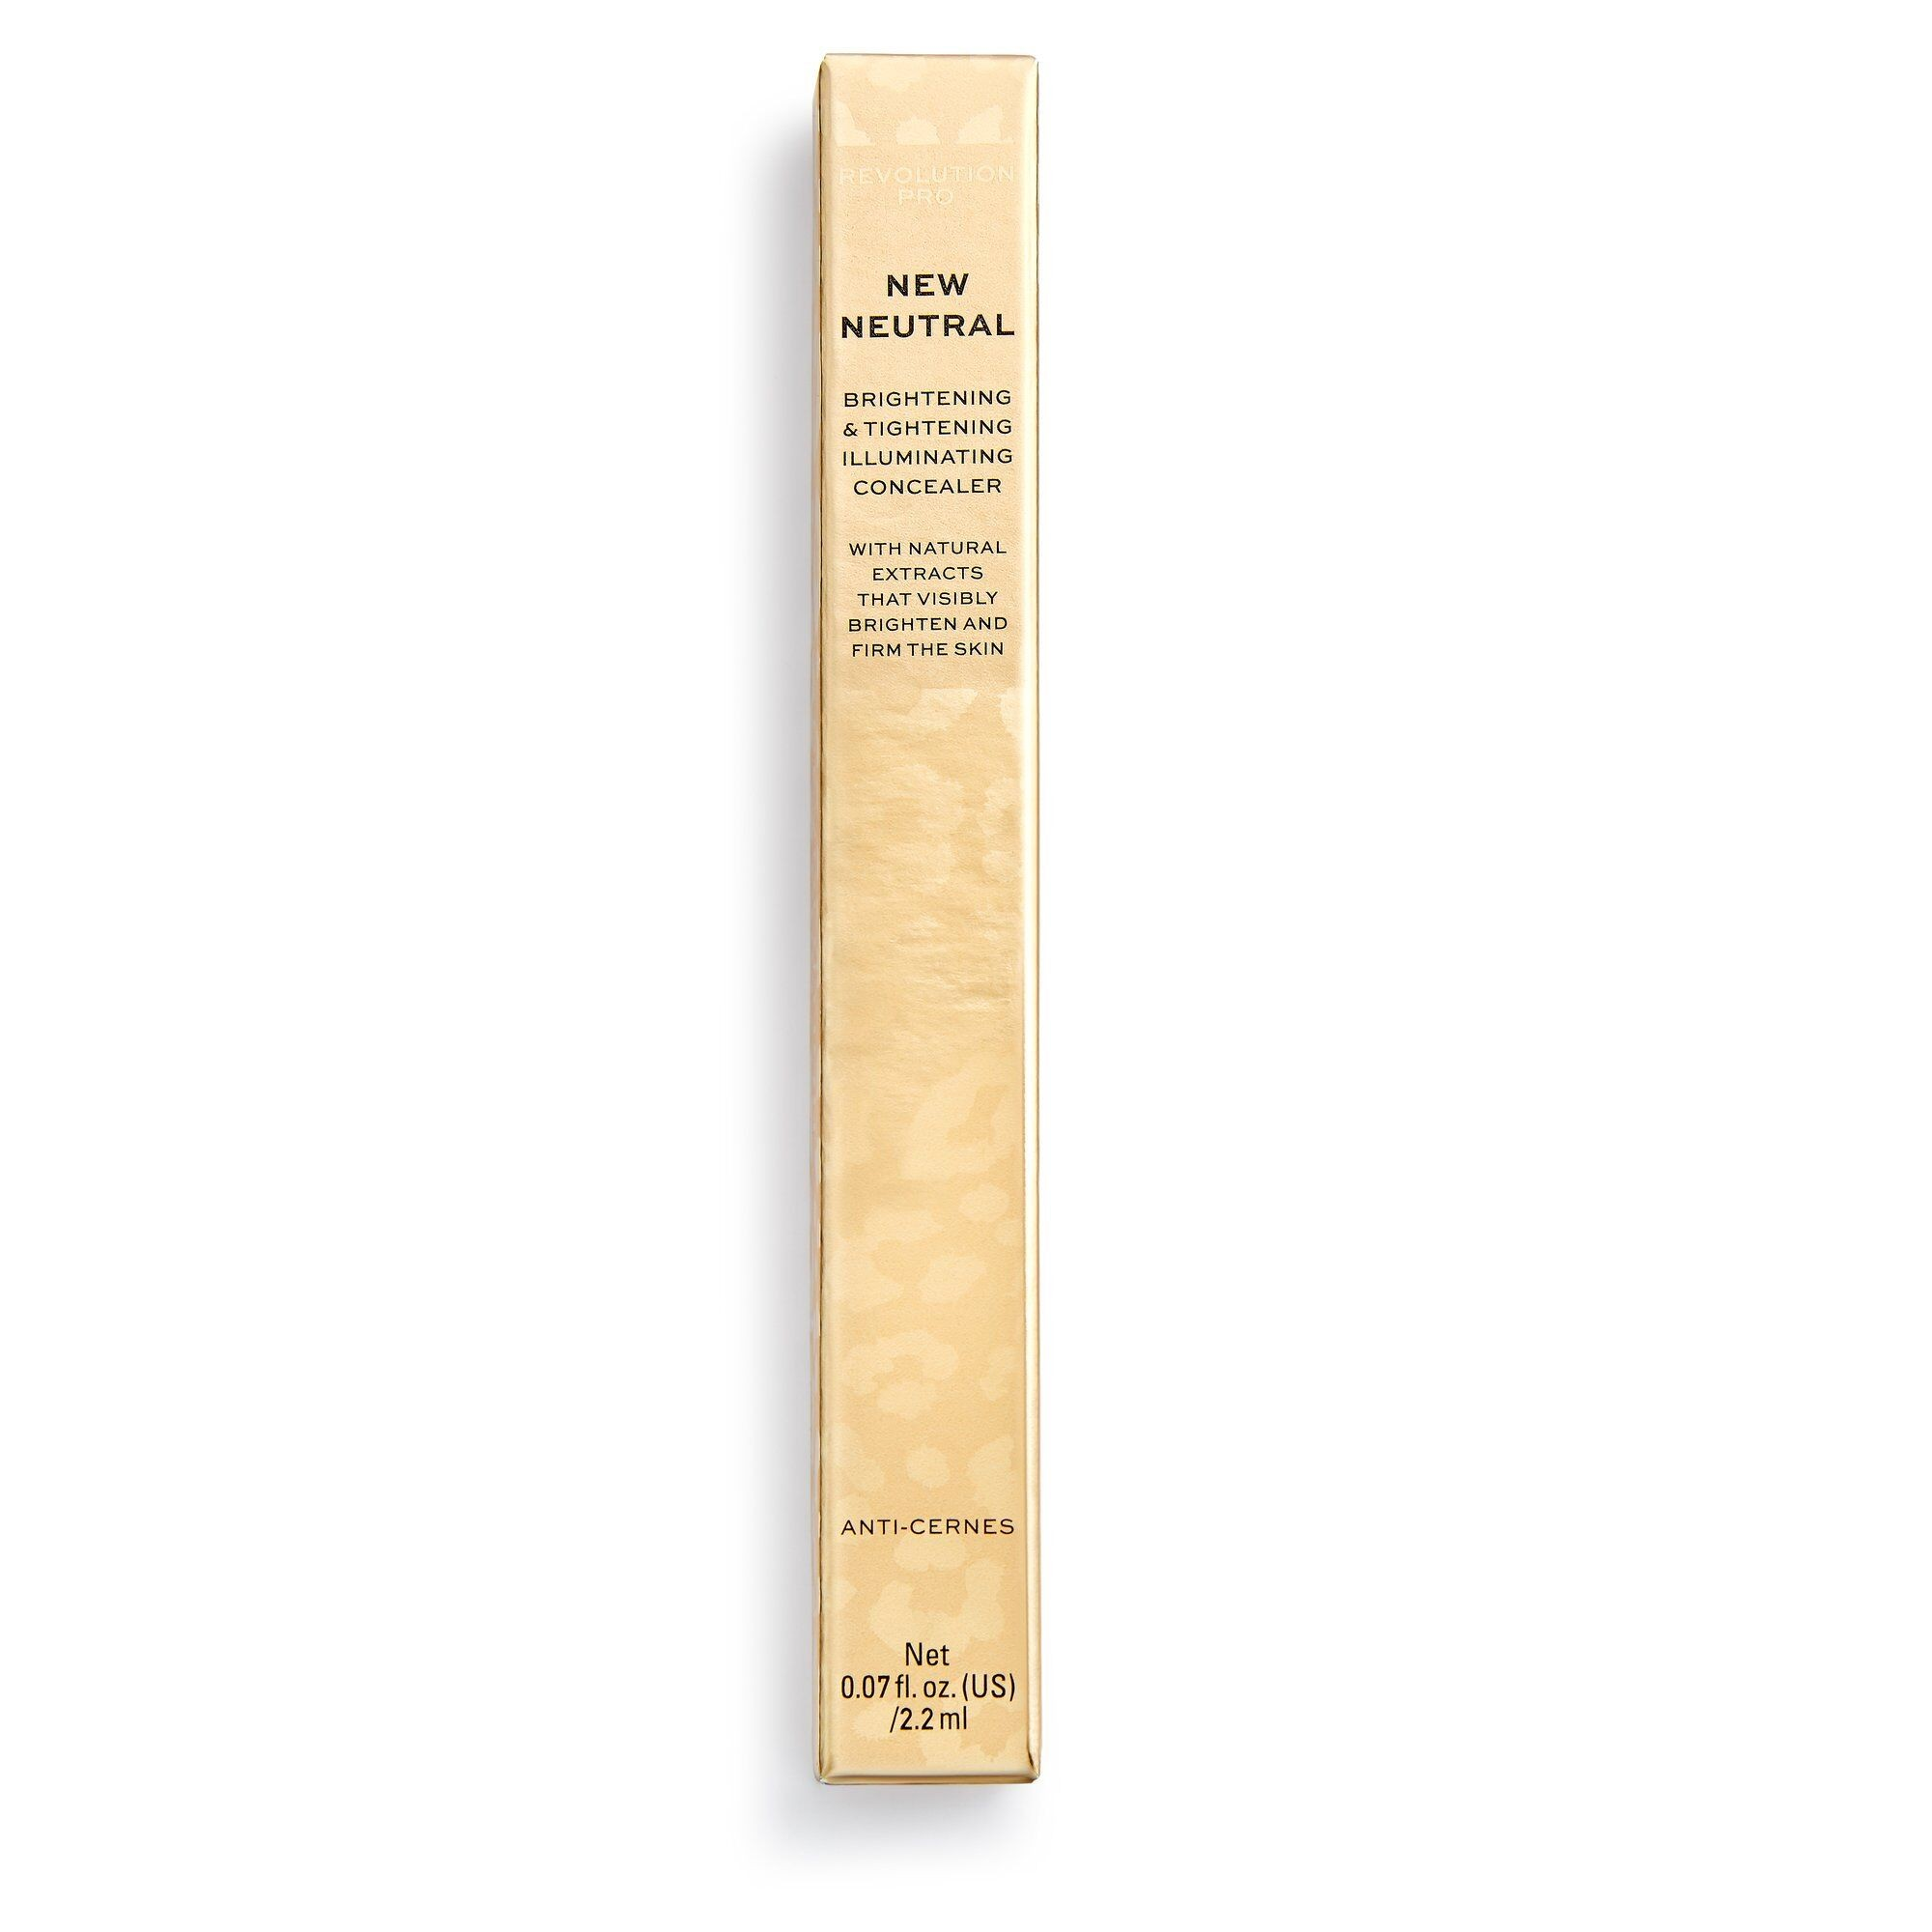 Correcteur Liquid - Brightening & Tightening Under Eye Concealing Wand